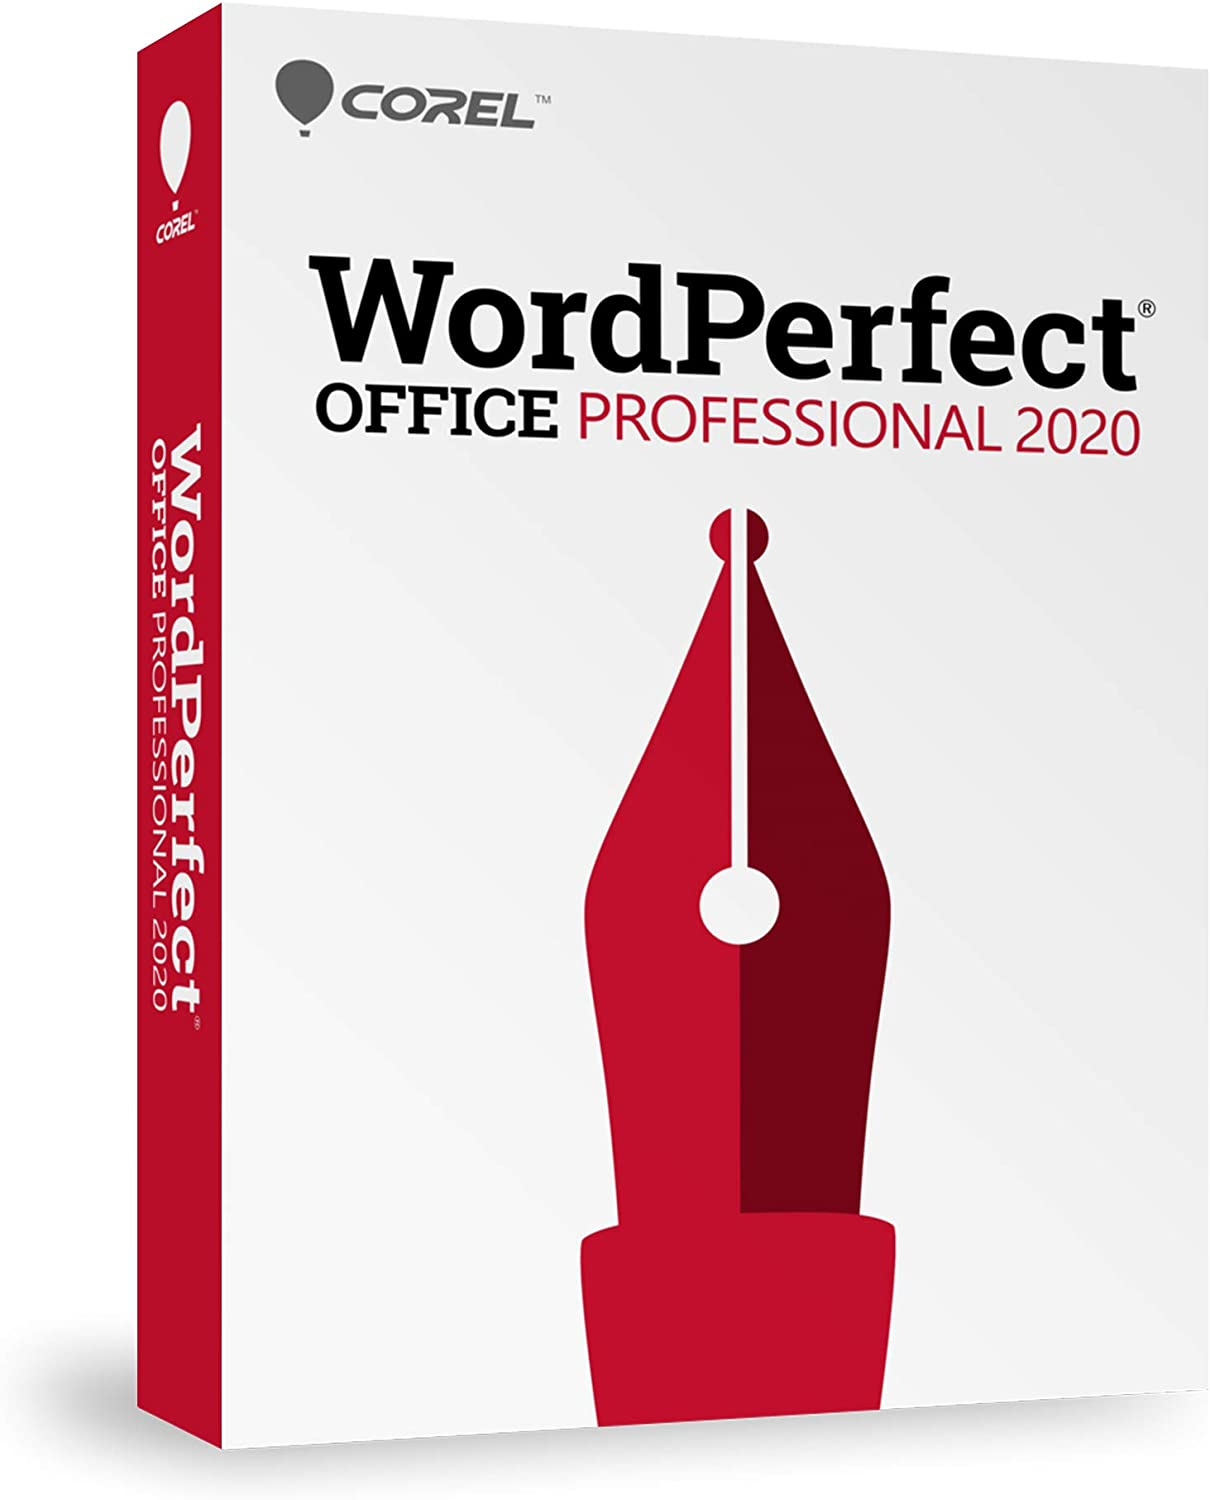 Corel WordPerfect Office 2020 Professional | Word Processor, Spreadsheets, Presentations, Paradox Database Management Documents, Letters, Contracts, Pleading papers, eBooks [PC Disc]